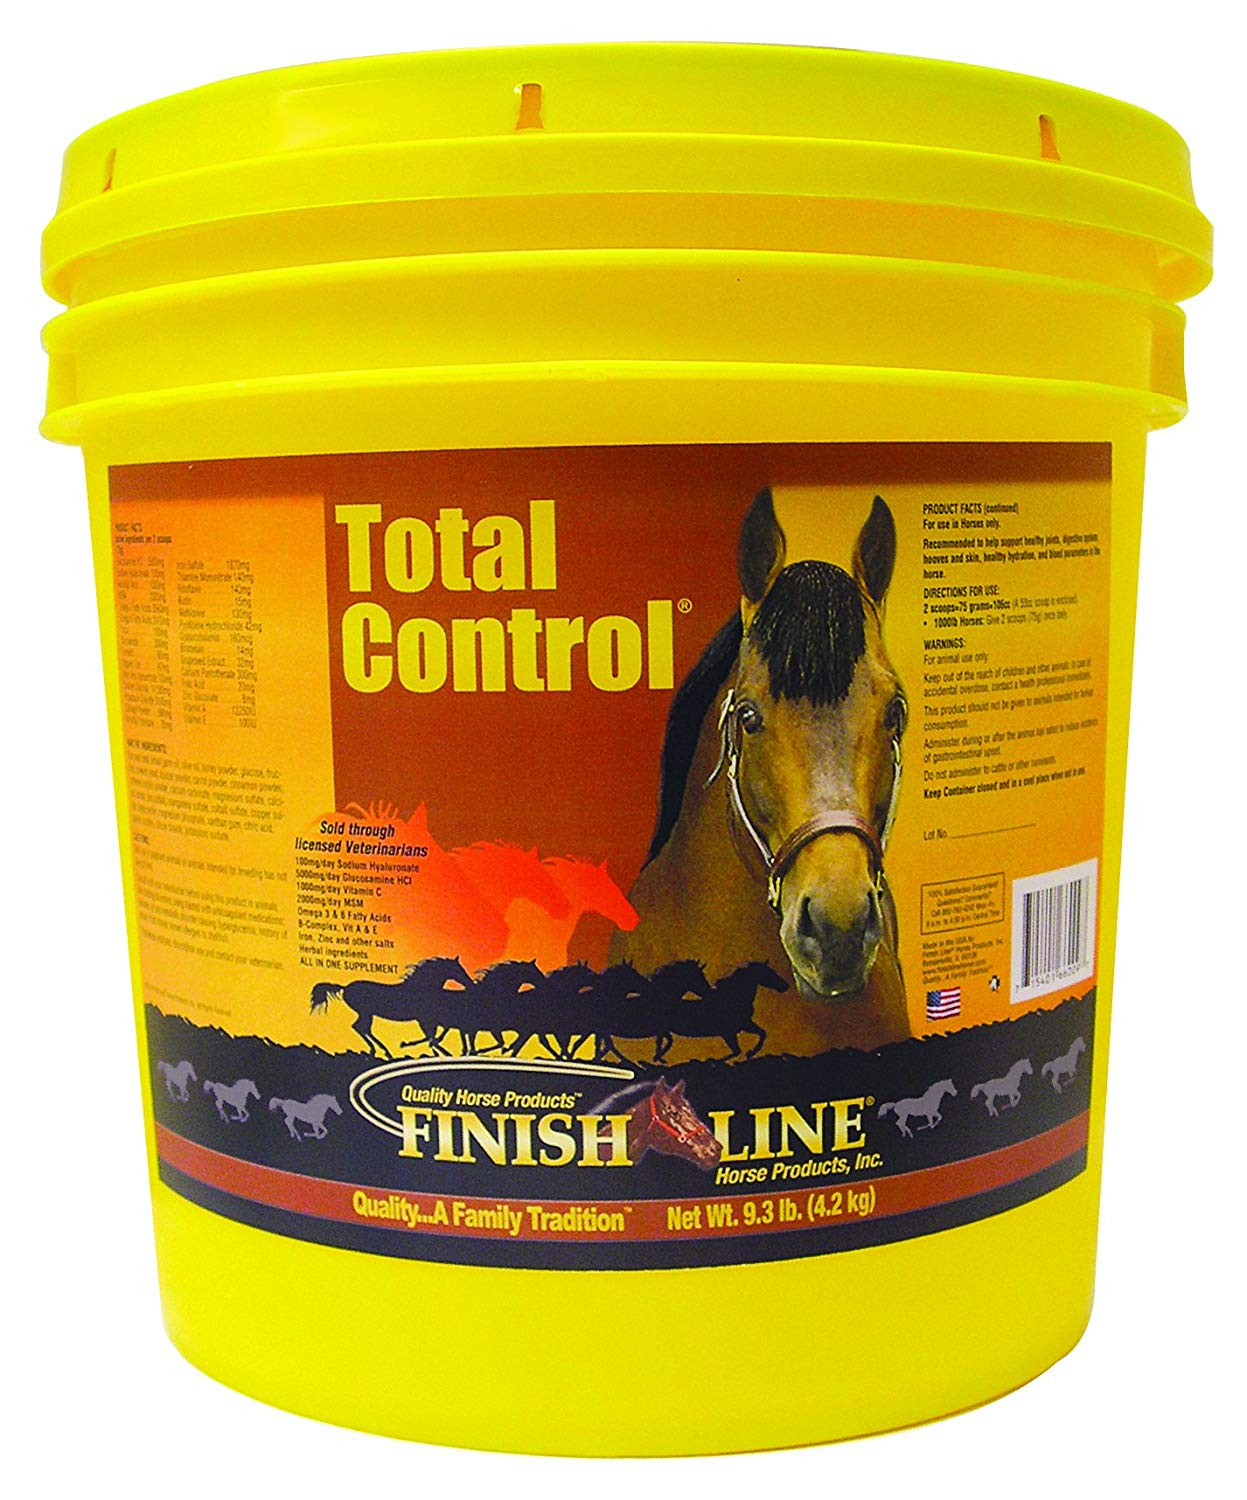 Finish Line Horse Products Total Control